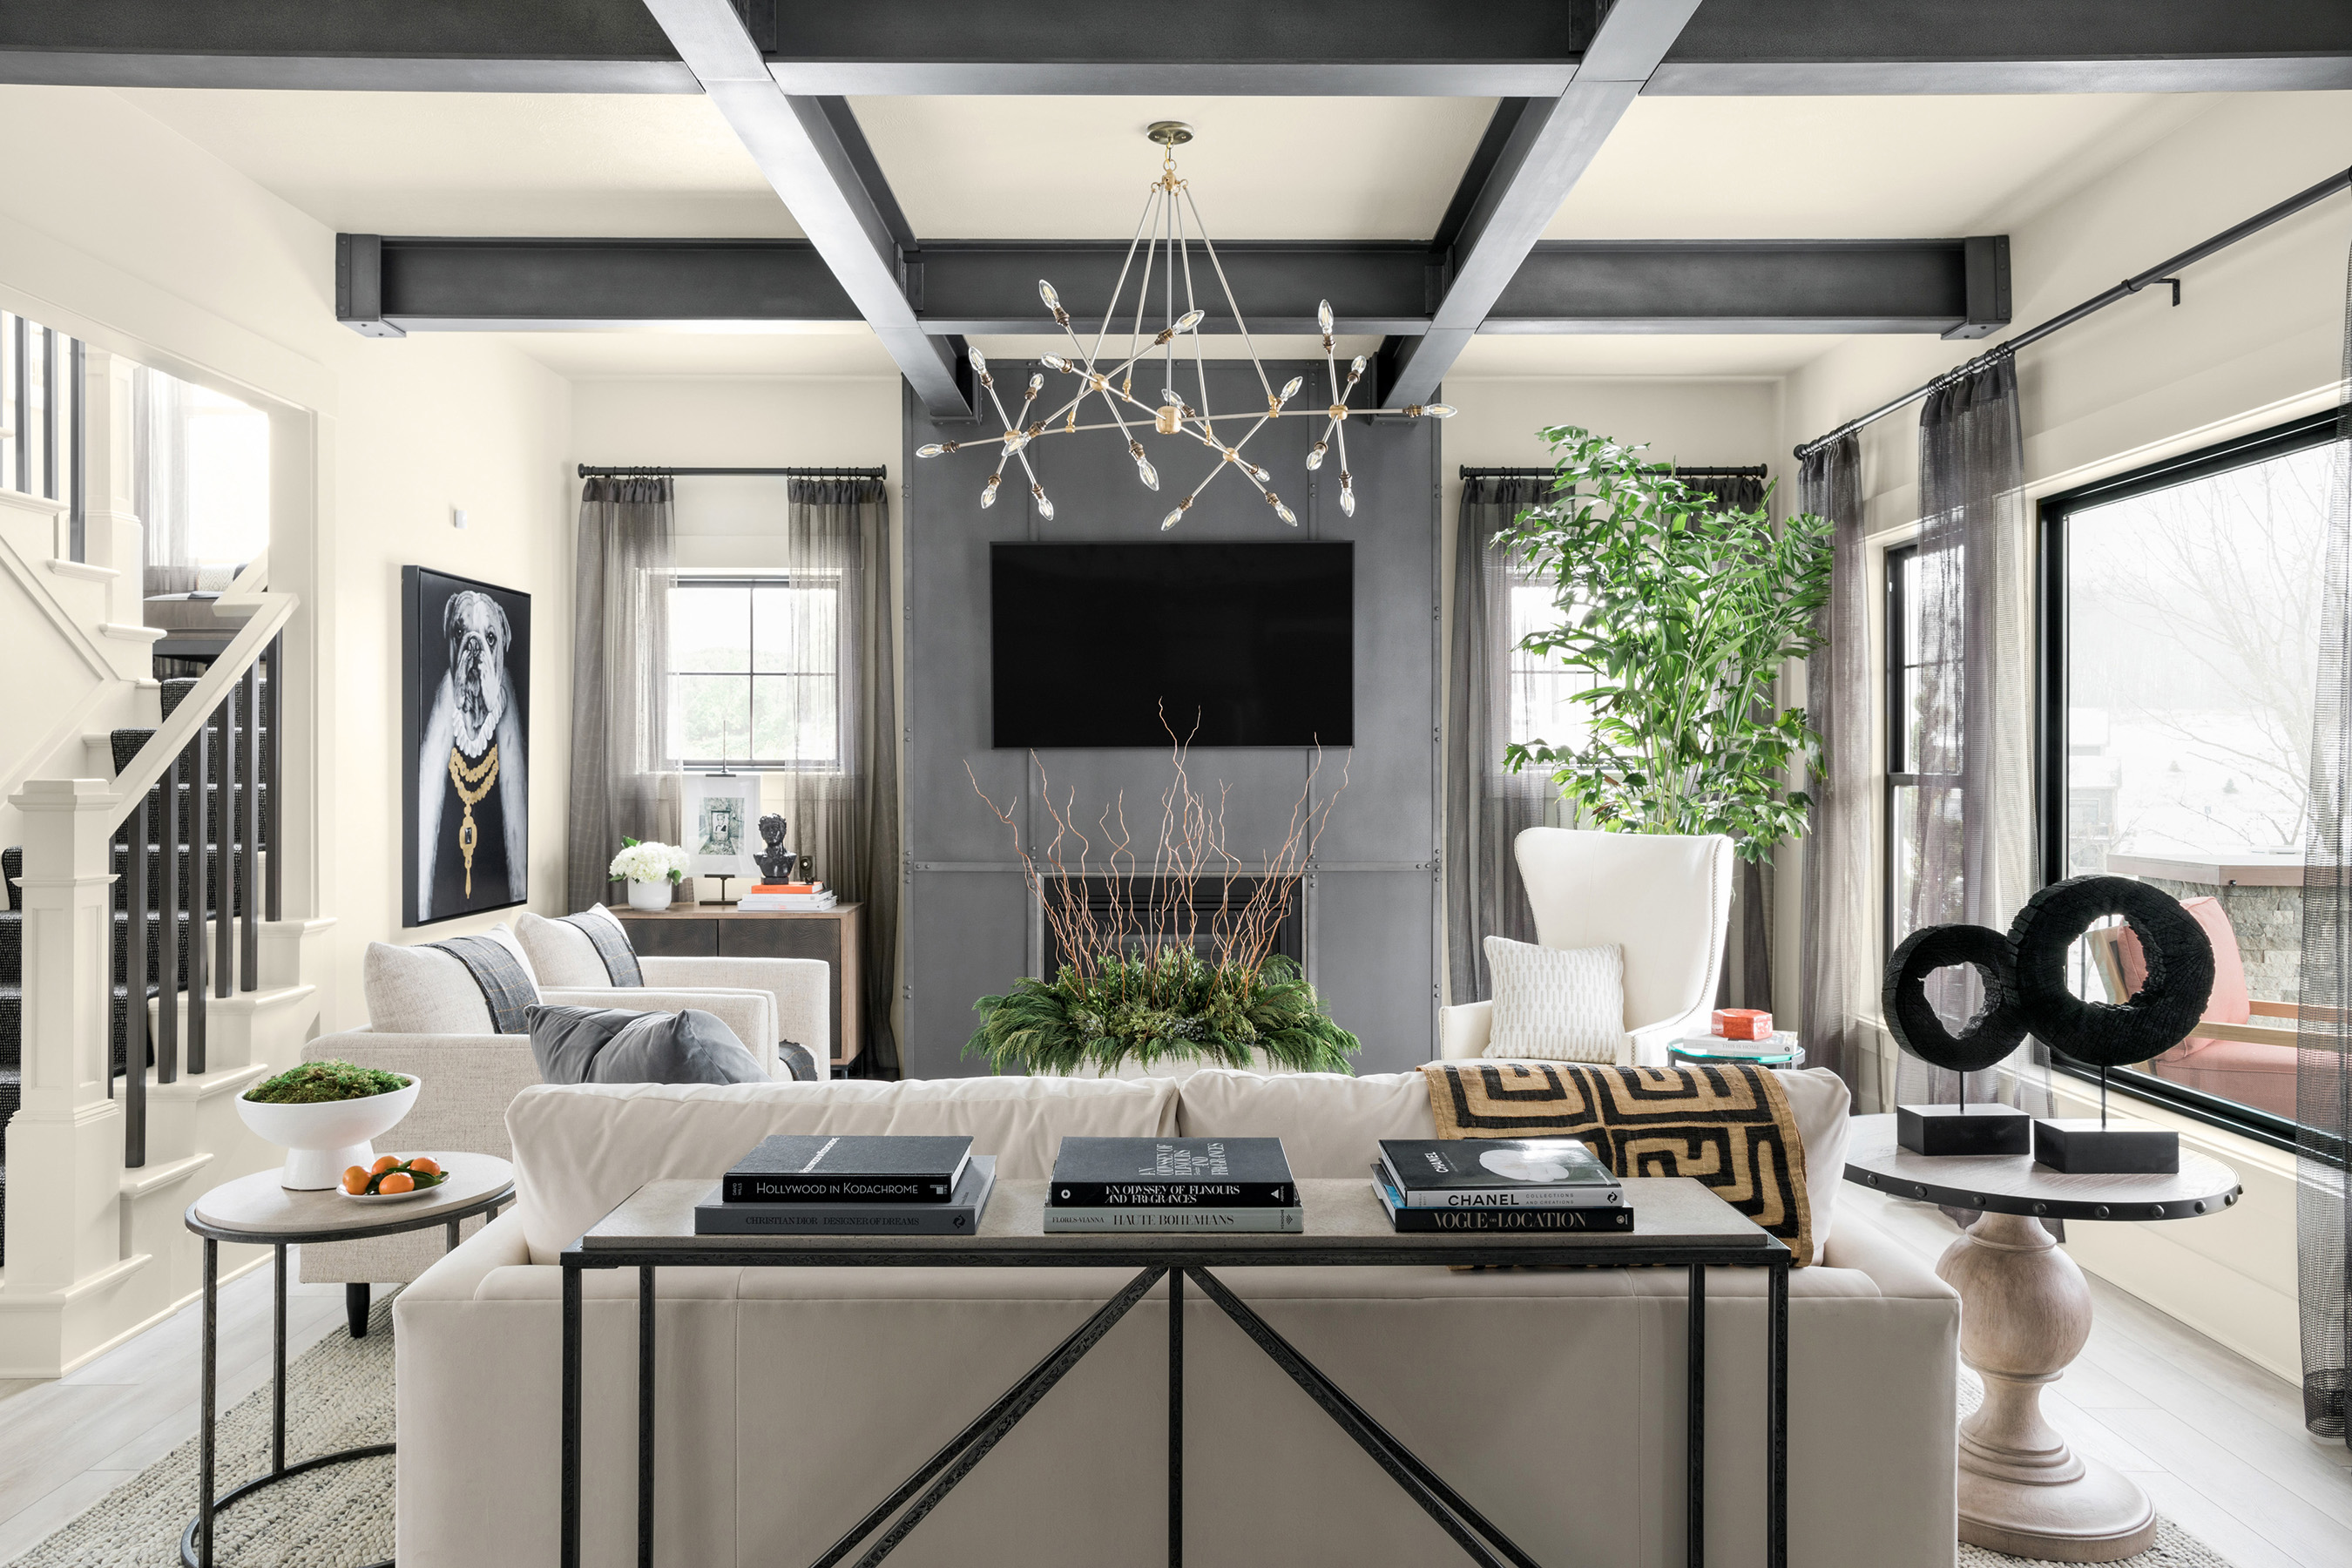 The HGTV Dream Home 2020 Great Room is a chic, comforting space, perfect for entertaining.